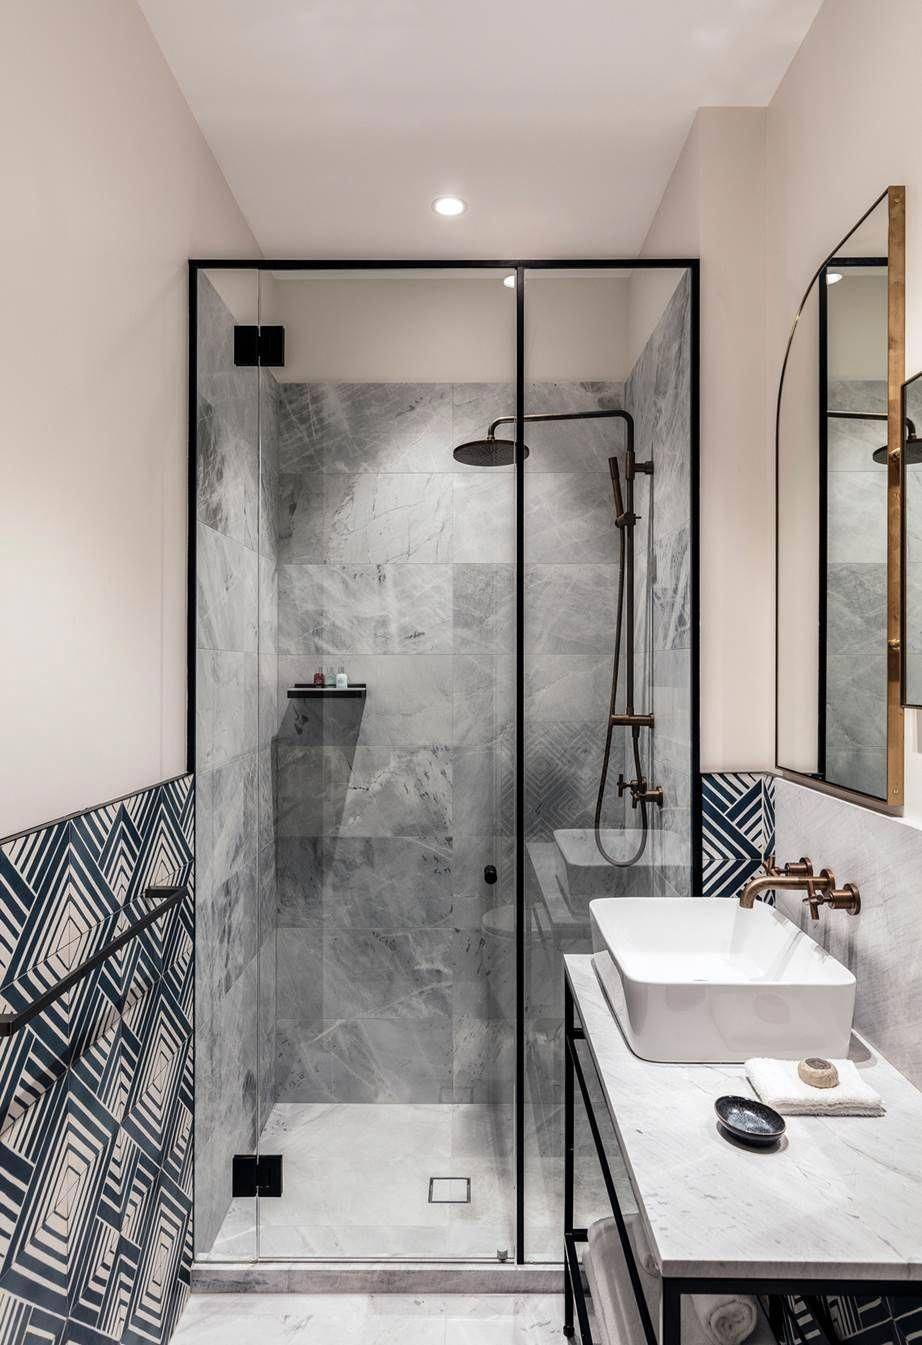 Bathroom With Navy And White Geometric Tiles Paired With Marble Vanity The Shower Stall Is Tiled In Boutique Bathroom Ensuite Bathroom Designs Bathroom Design